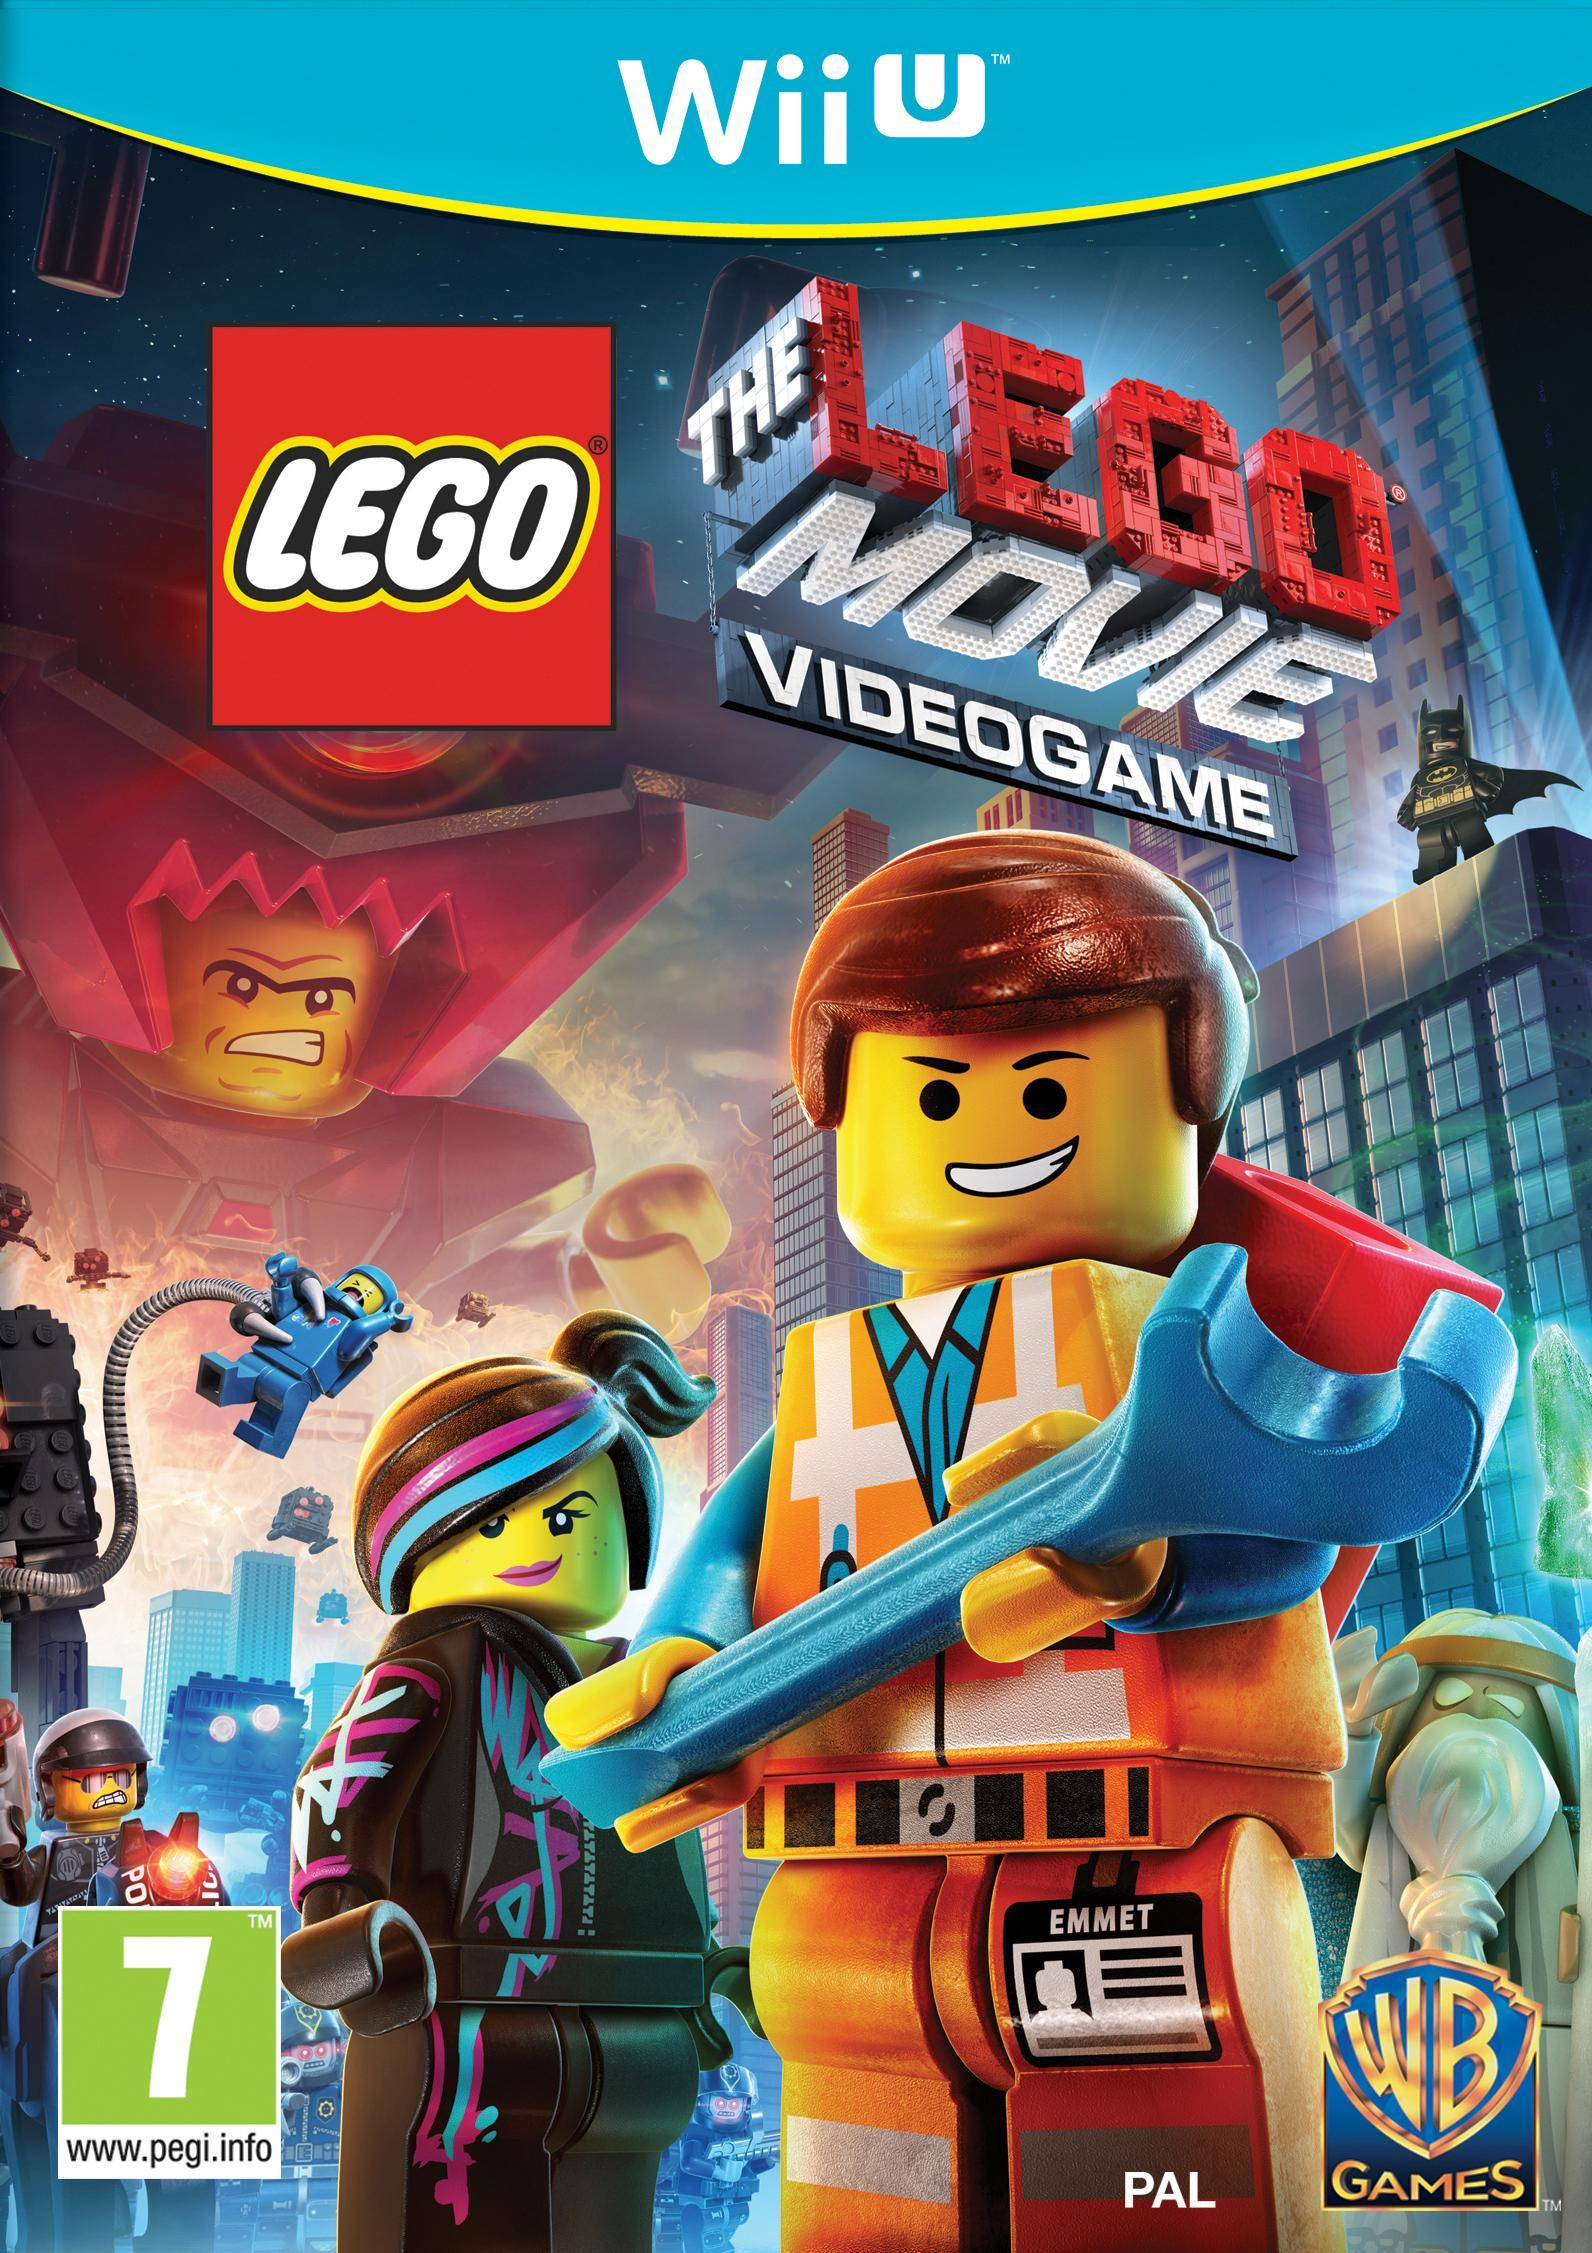 Warner Bros LEGO Movie Wii U (1000452079) thumbnail